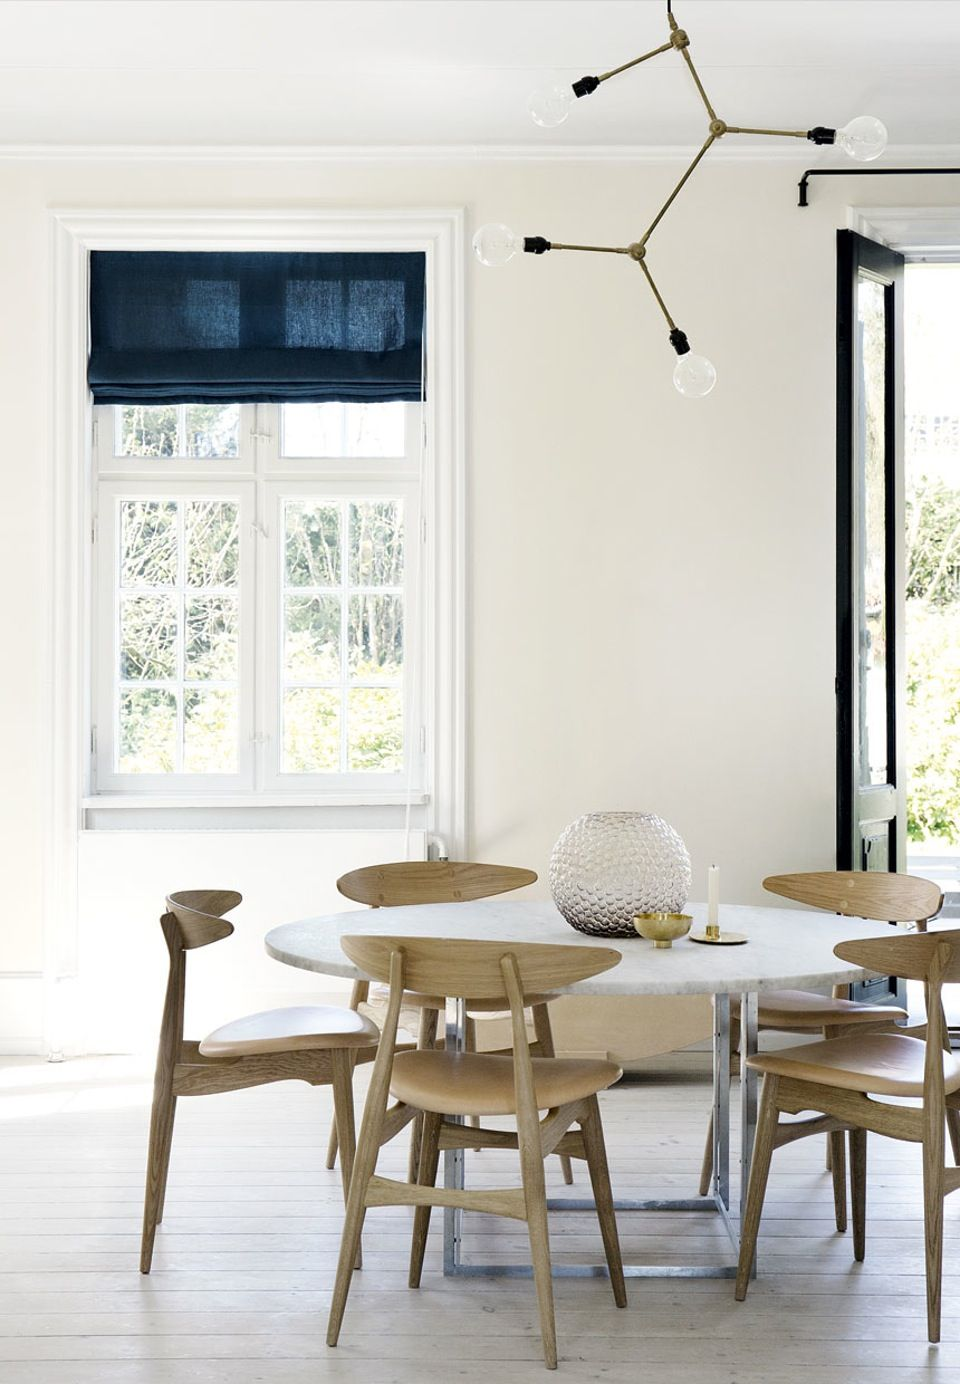 Amazing Dining Room With A Lot Of Danish Design Classics PK54 Marble Table From Fritz